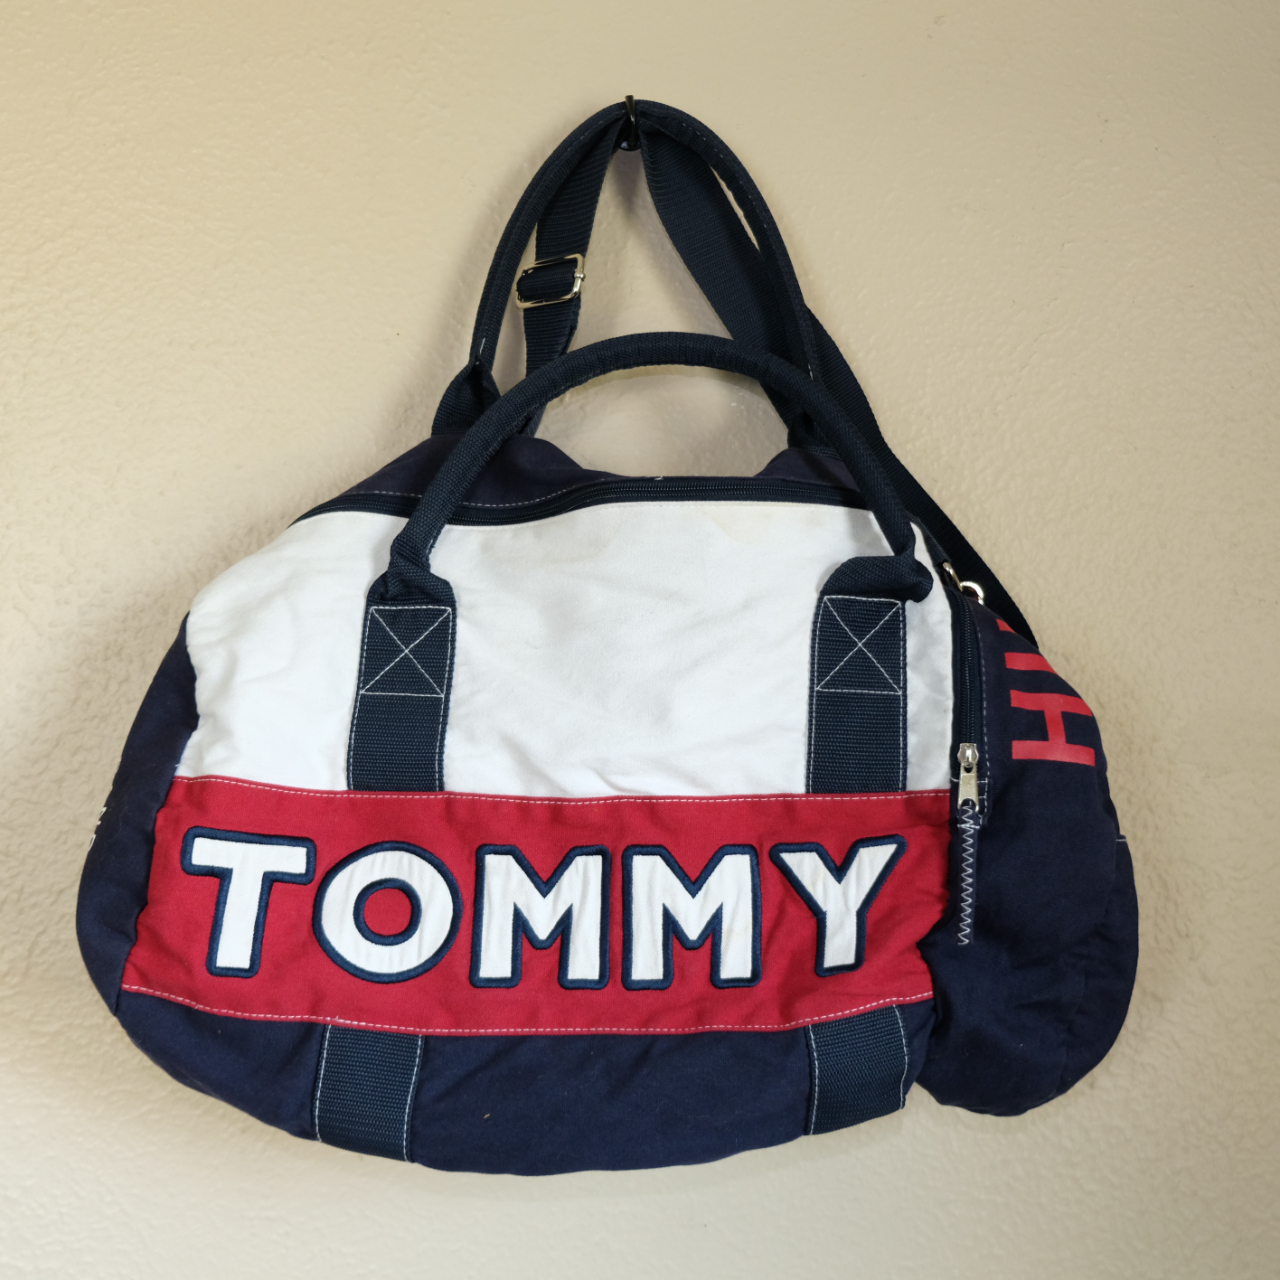 Product Image 1 - Pre-Loved Tommy Hilfiger Colorblock Duffle